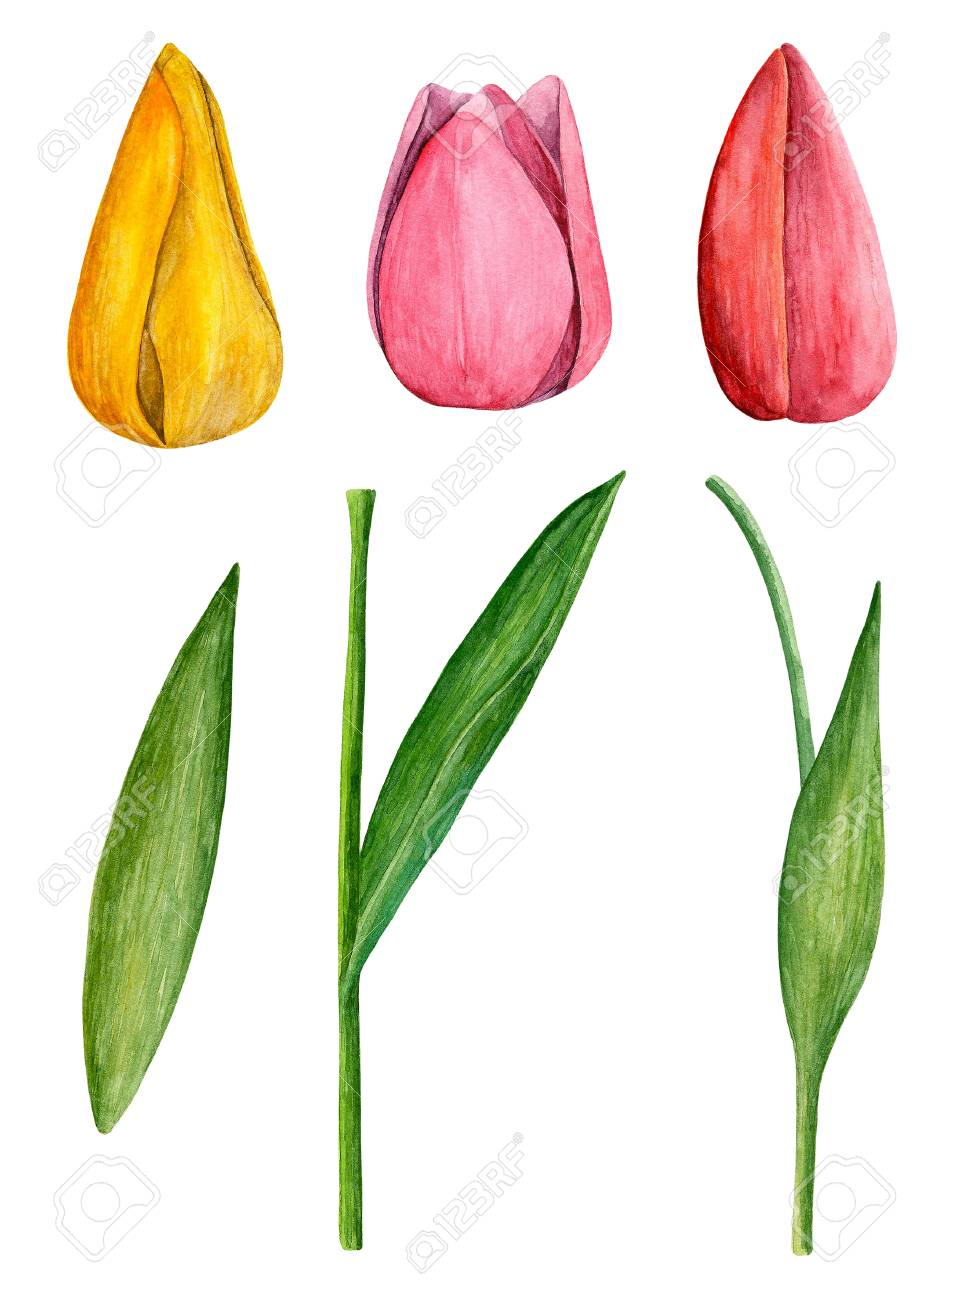 Tulips Clip Art Watercolor Spring Flowers Stock Photo Picture And